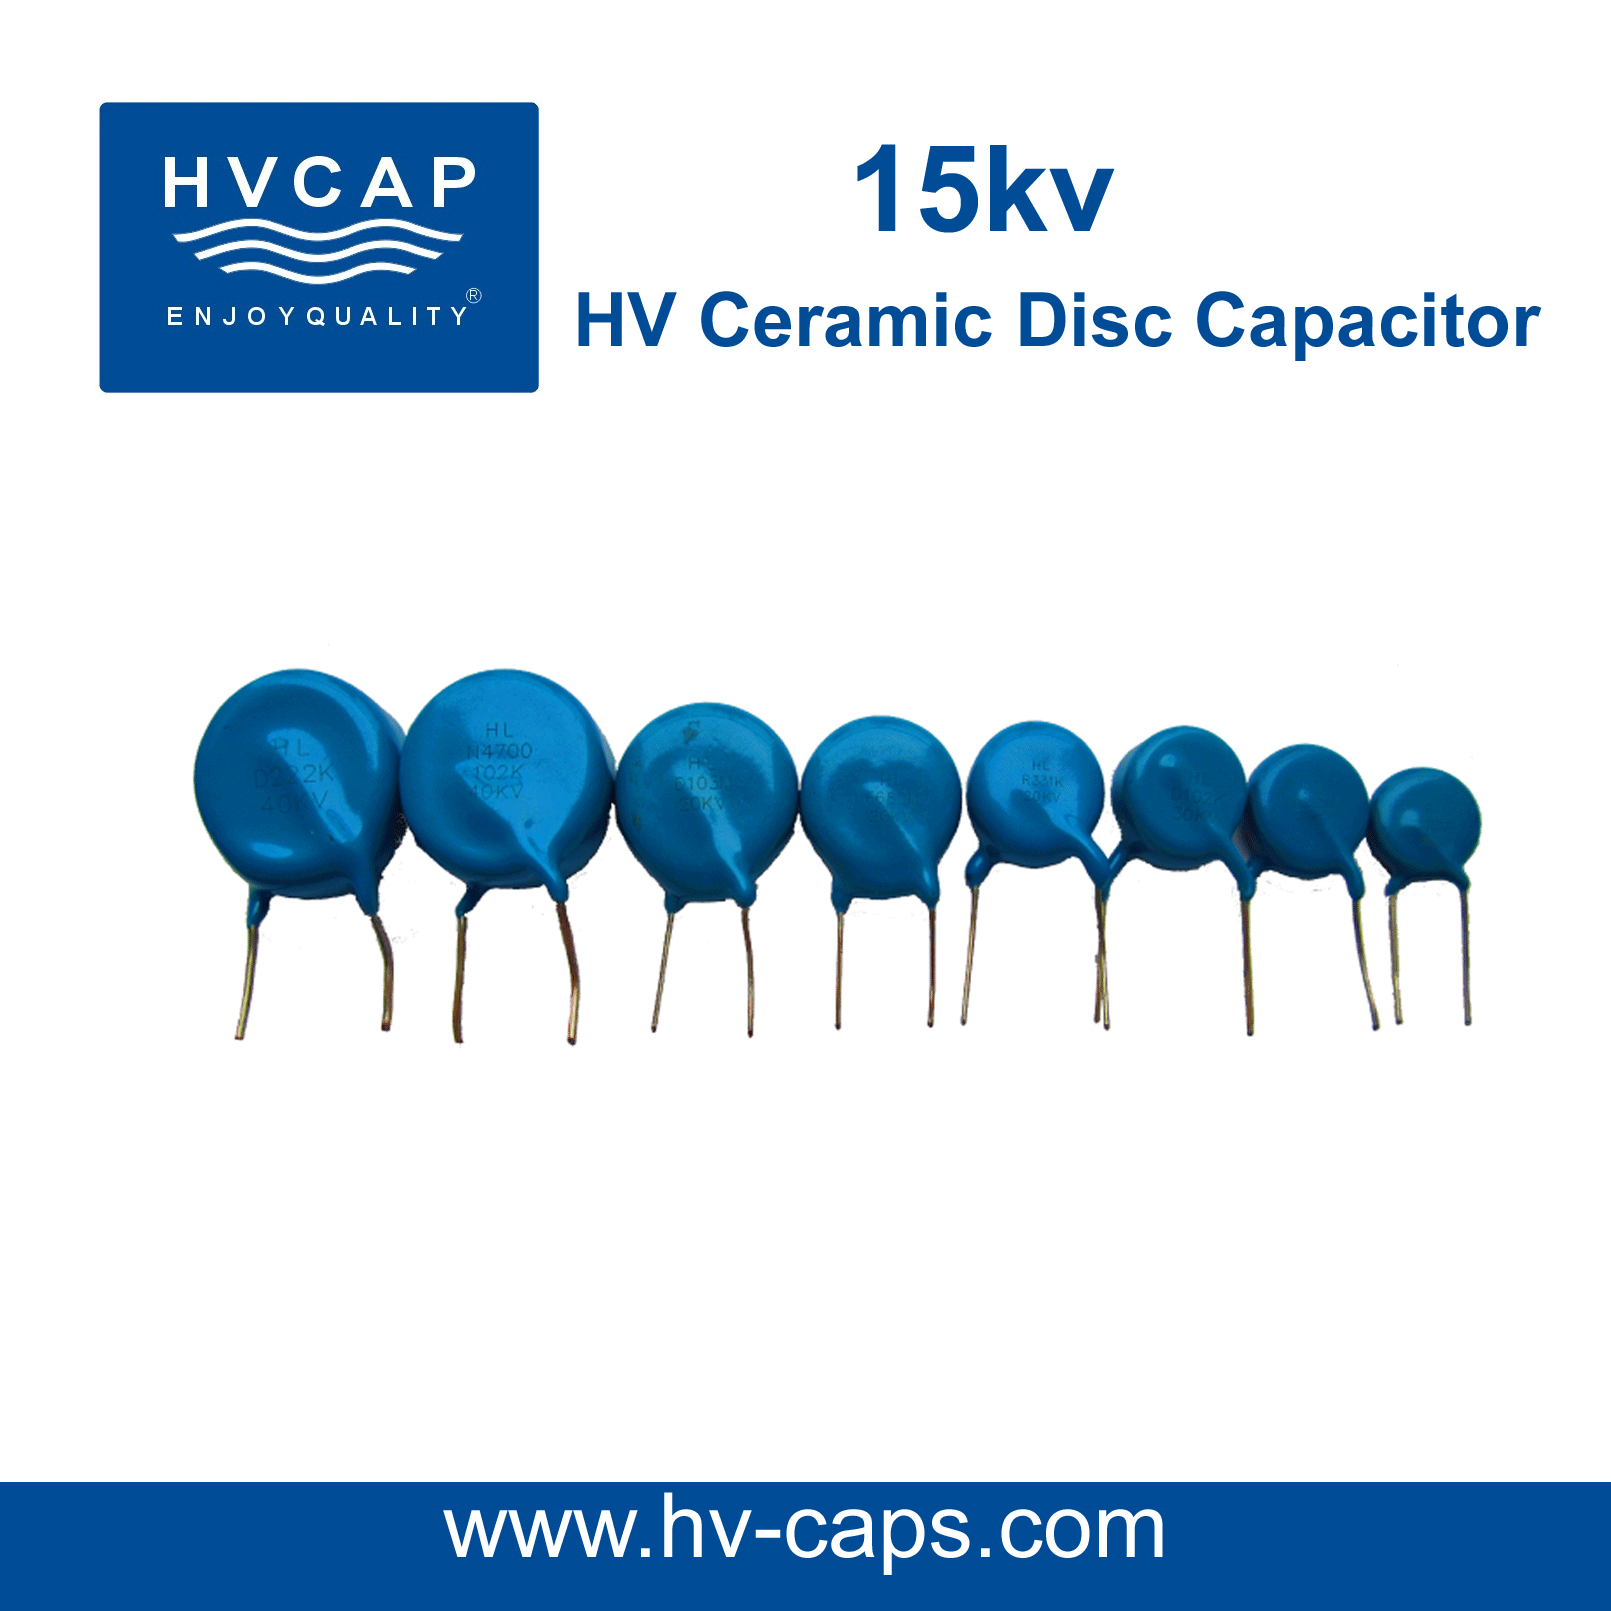 High Voltage Ceramic Capacitor 15kv detail specification.